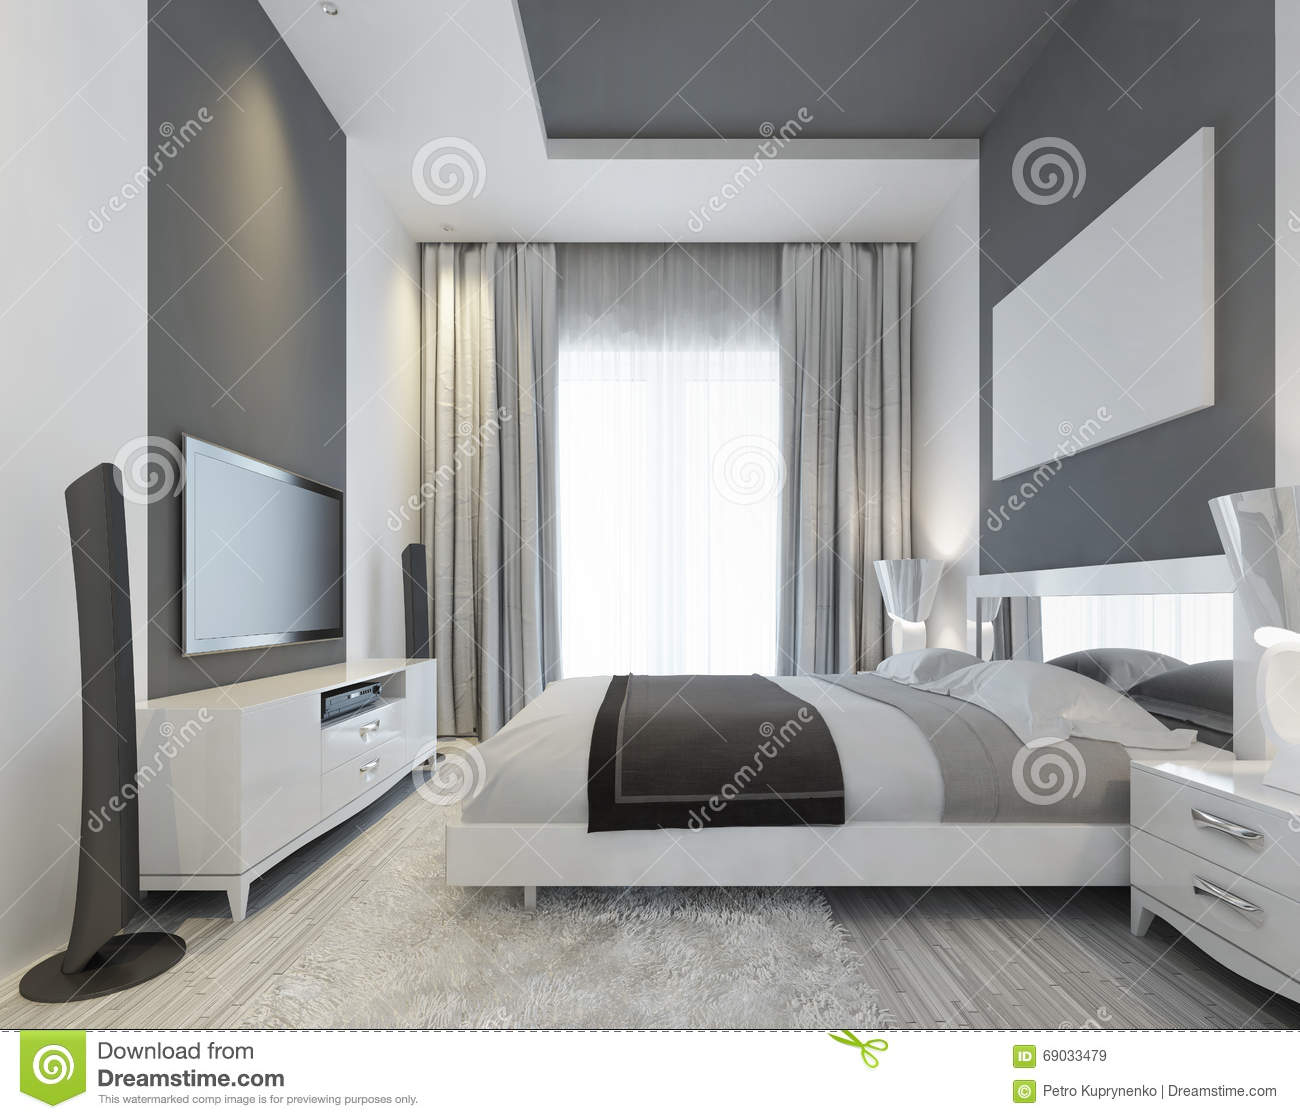 chambre coucher luxueuse avec une grande fen tre. Black Bedroom Furniture Sets. Home Design Ideas